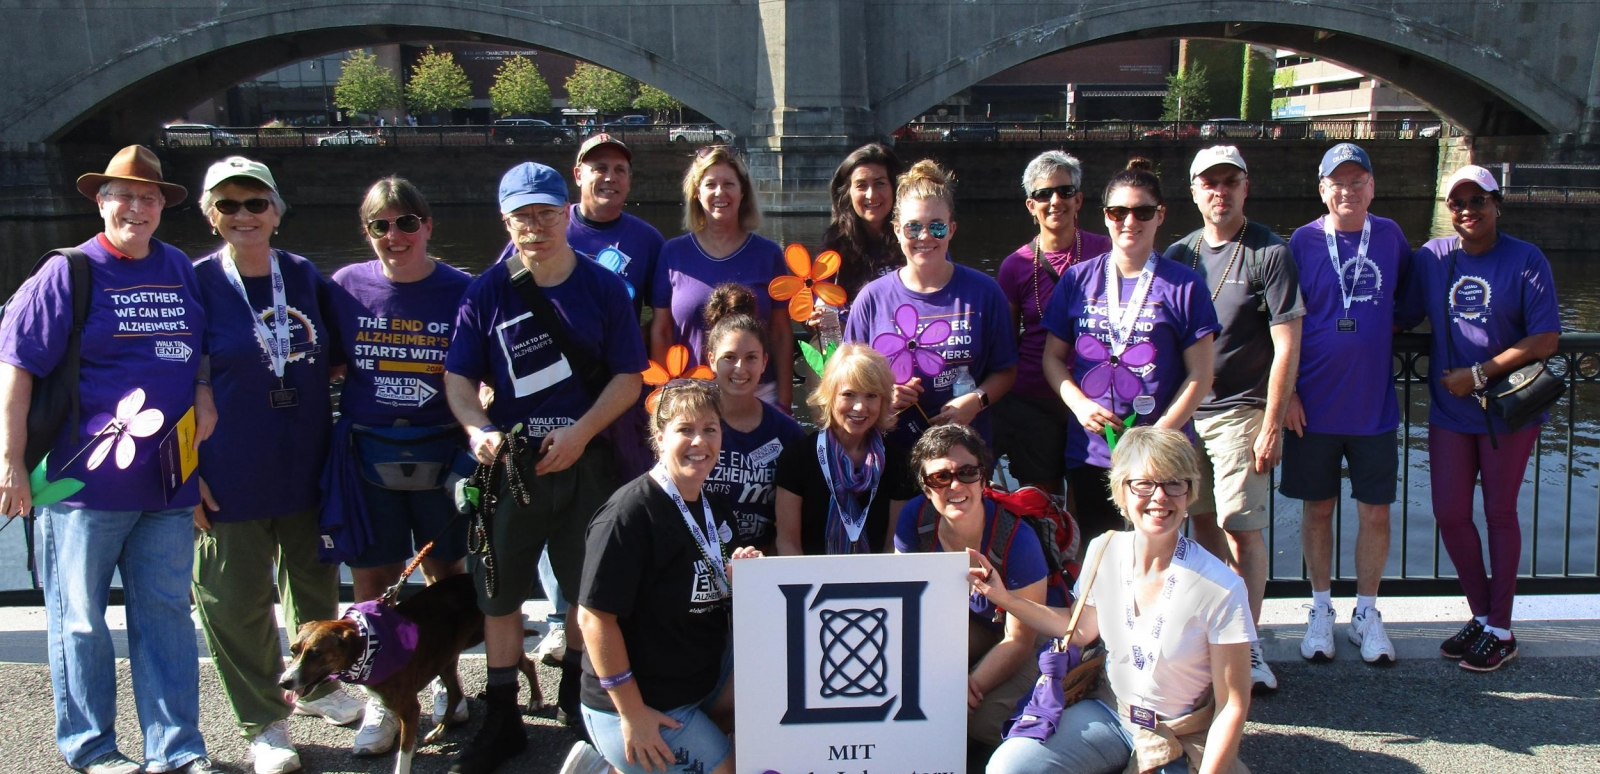 Since 2009 the Lincoln Laboratory Alzheimer Support Community has raised $235,000 and has consistently ranked among the top five teams in the region during the Greater Boston Walk to End Alzheimer's.